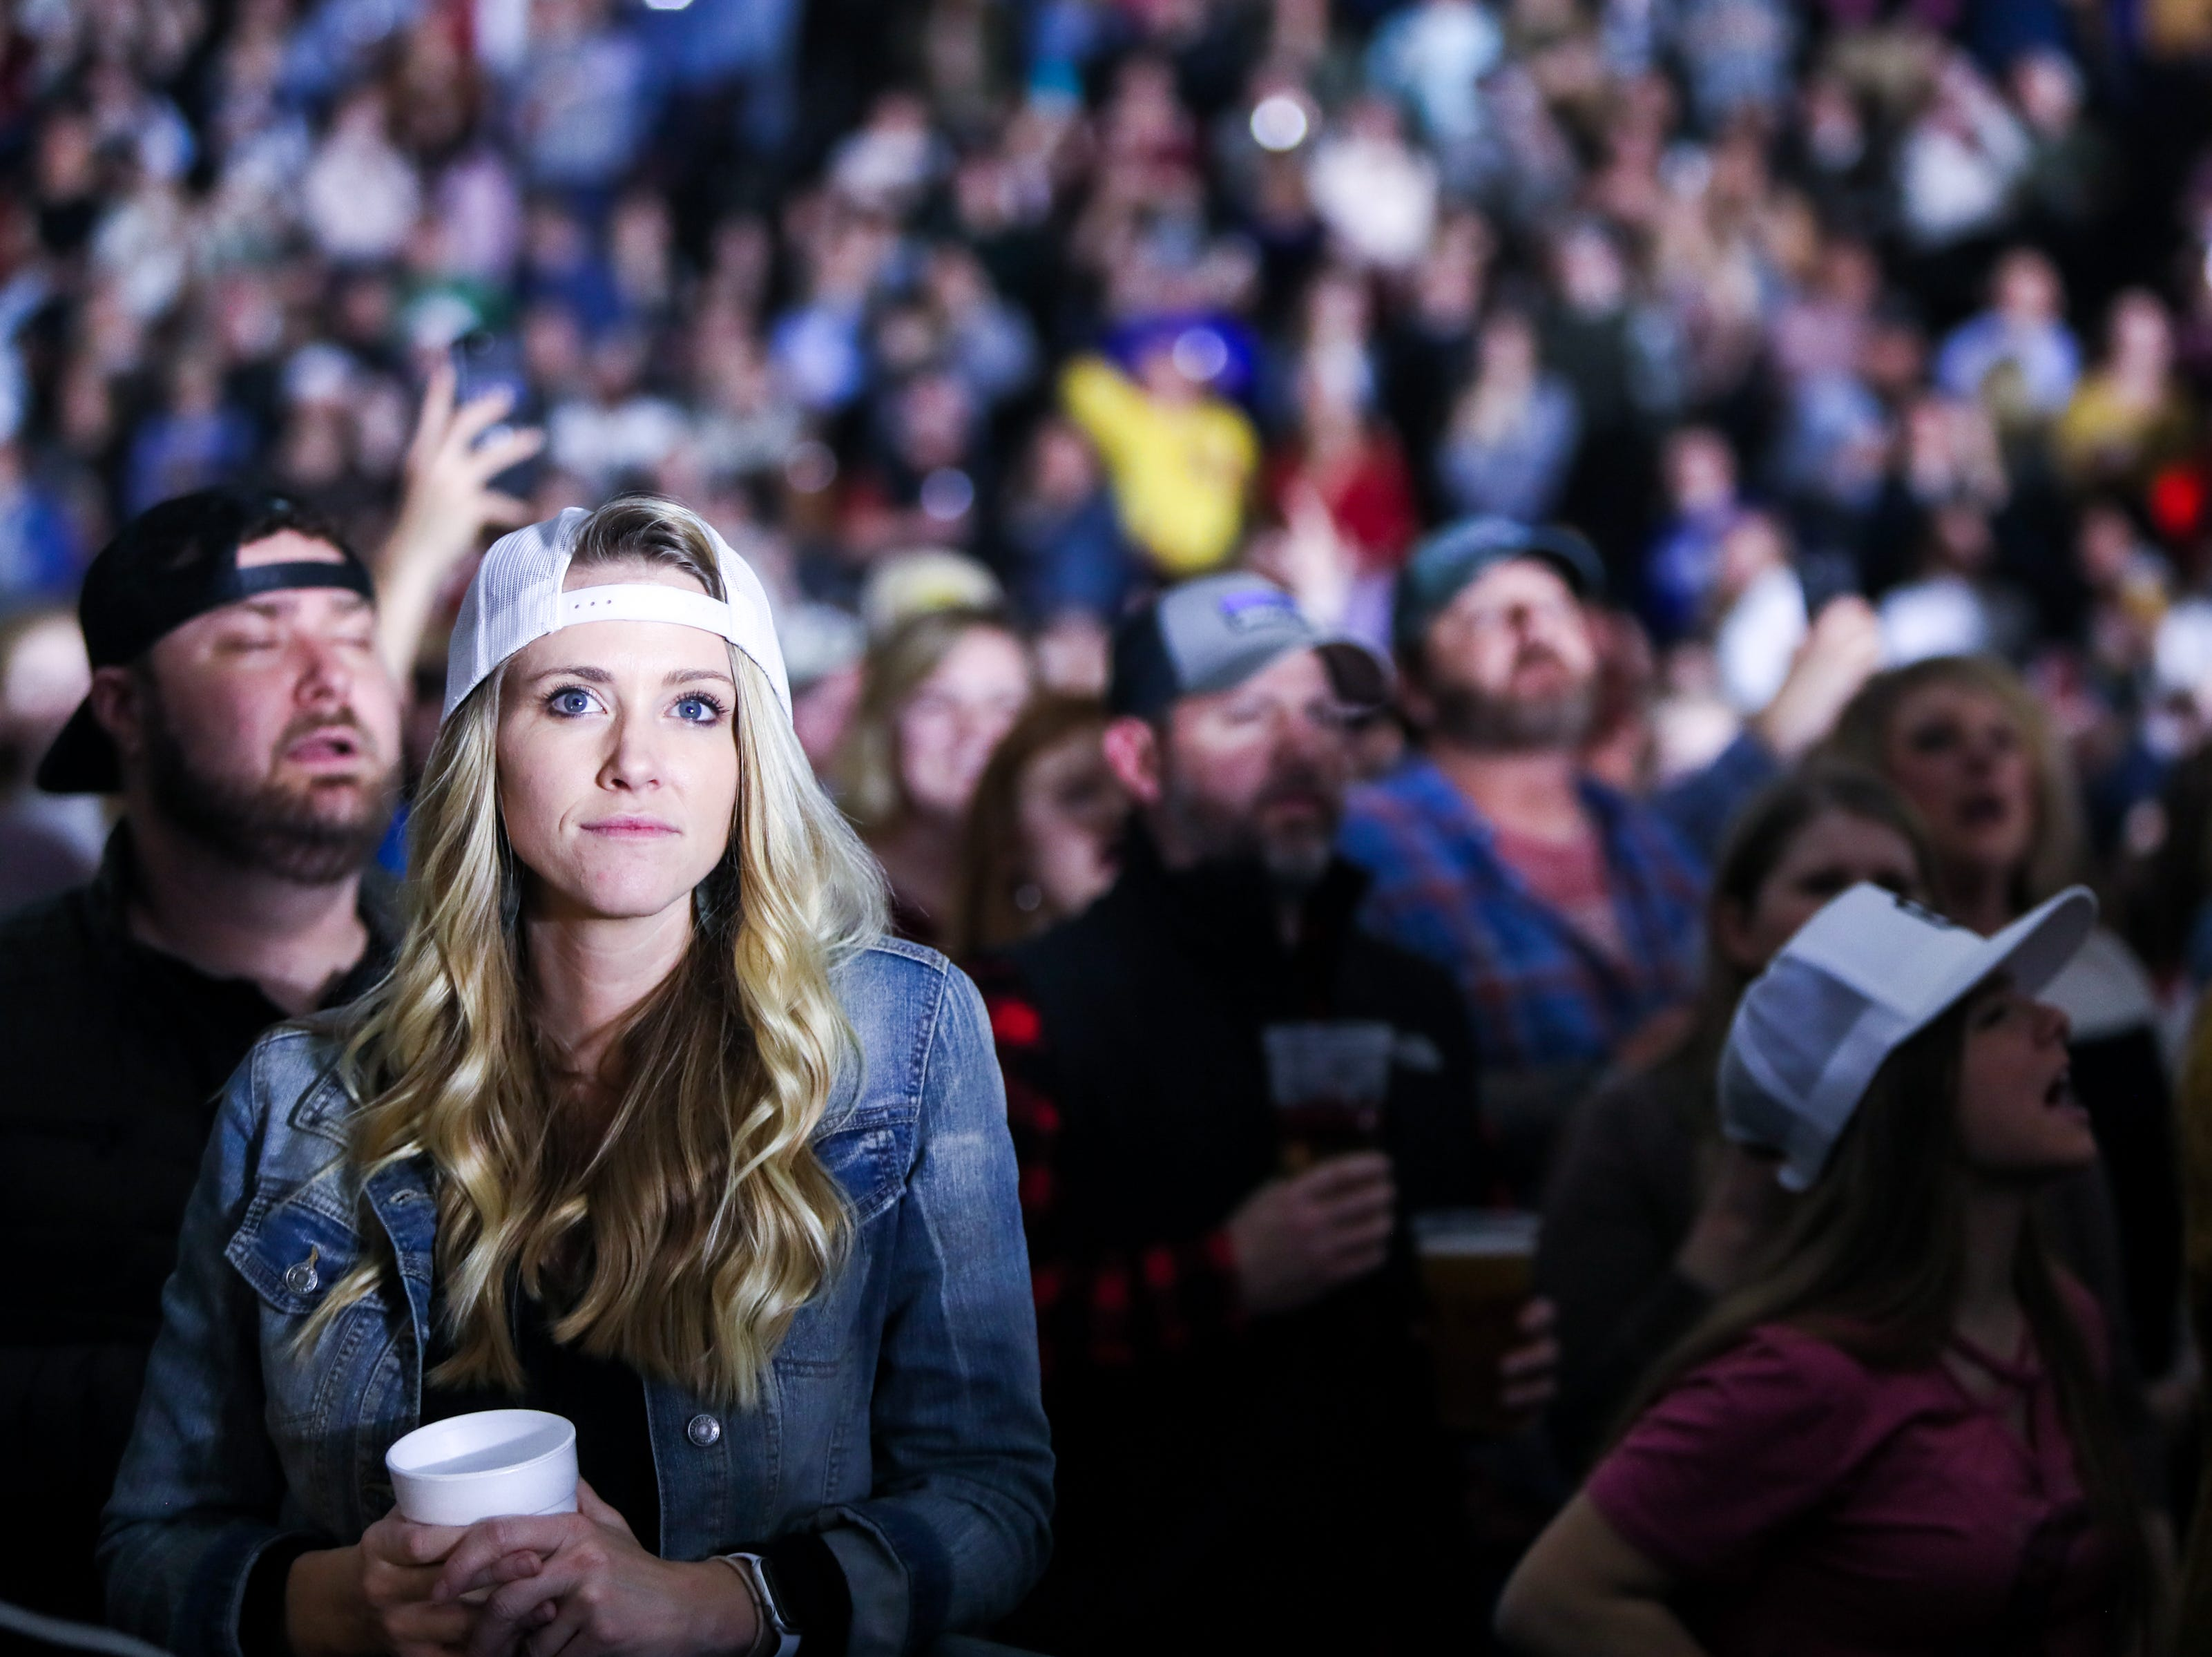 Fans watch Kane Brown perform at the Landers Center in Southaven, Miss., Friday, Jan. 18, 2019.